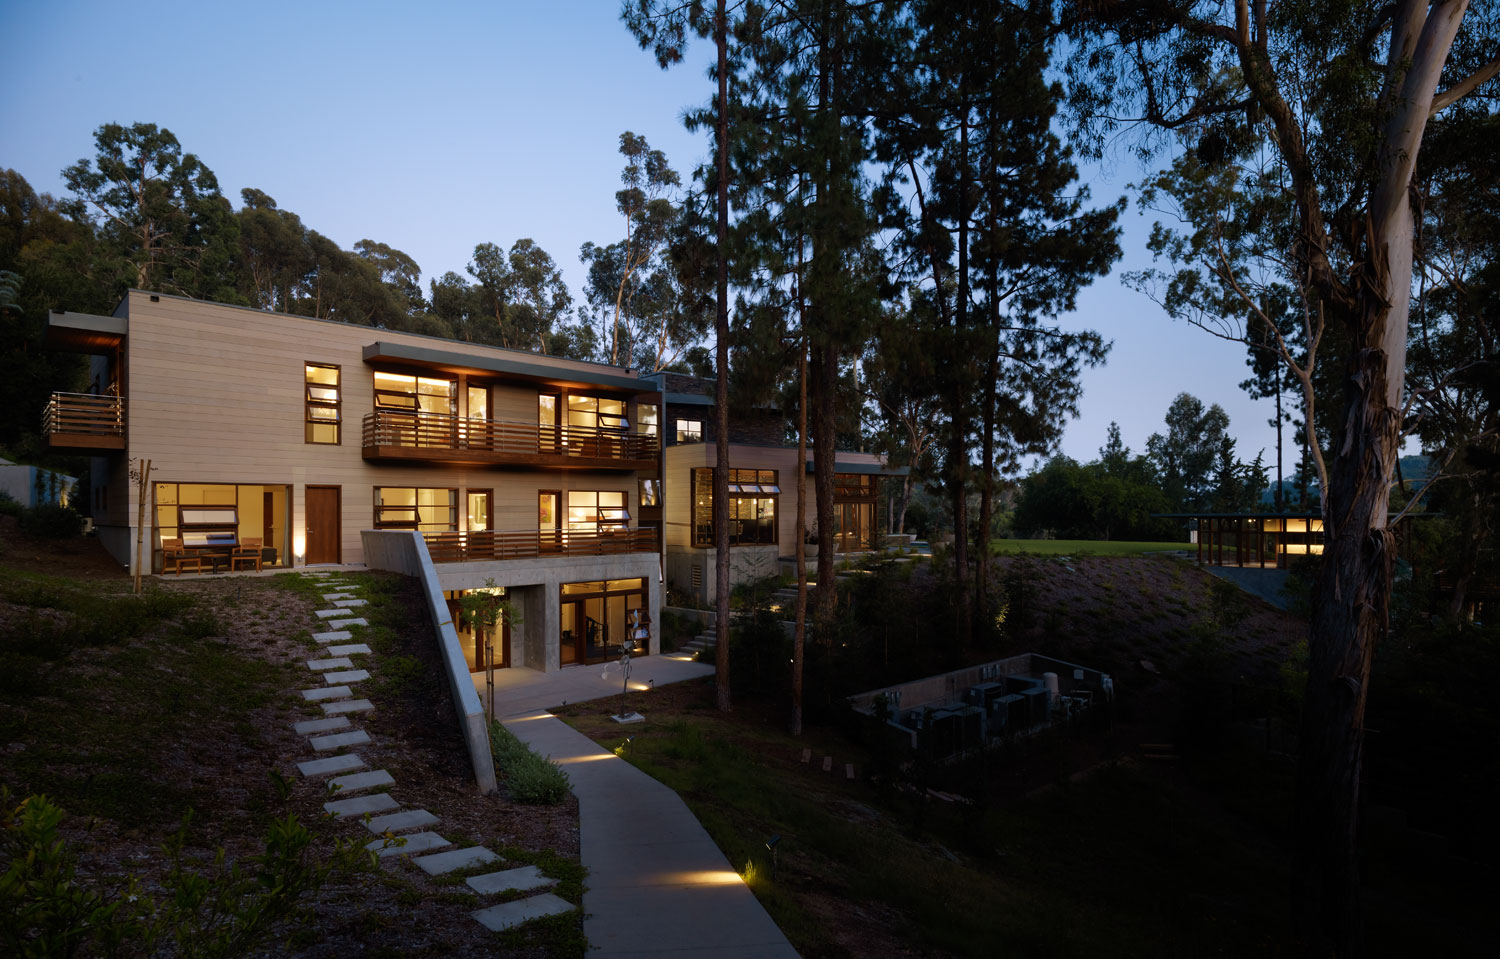 Irregularly Shaped House With A Small Grove Of Eucalyptus